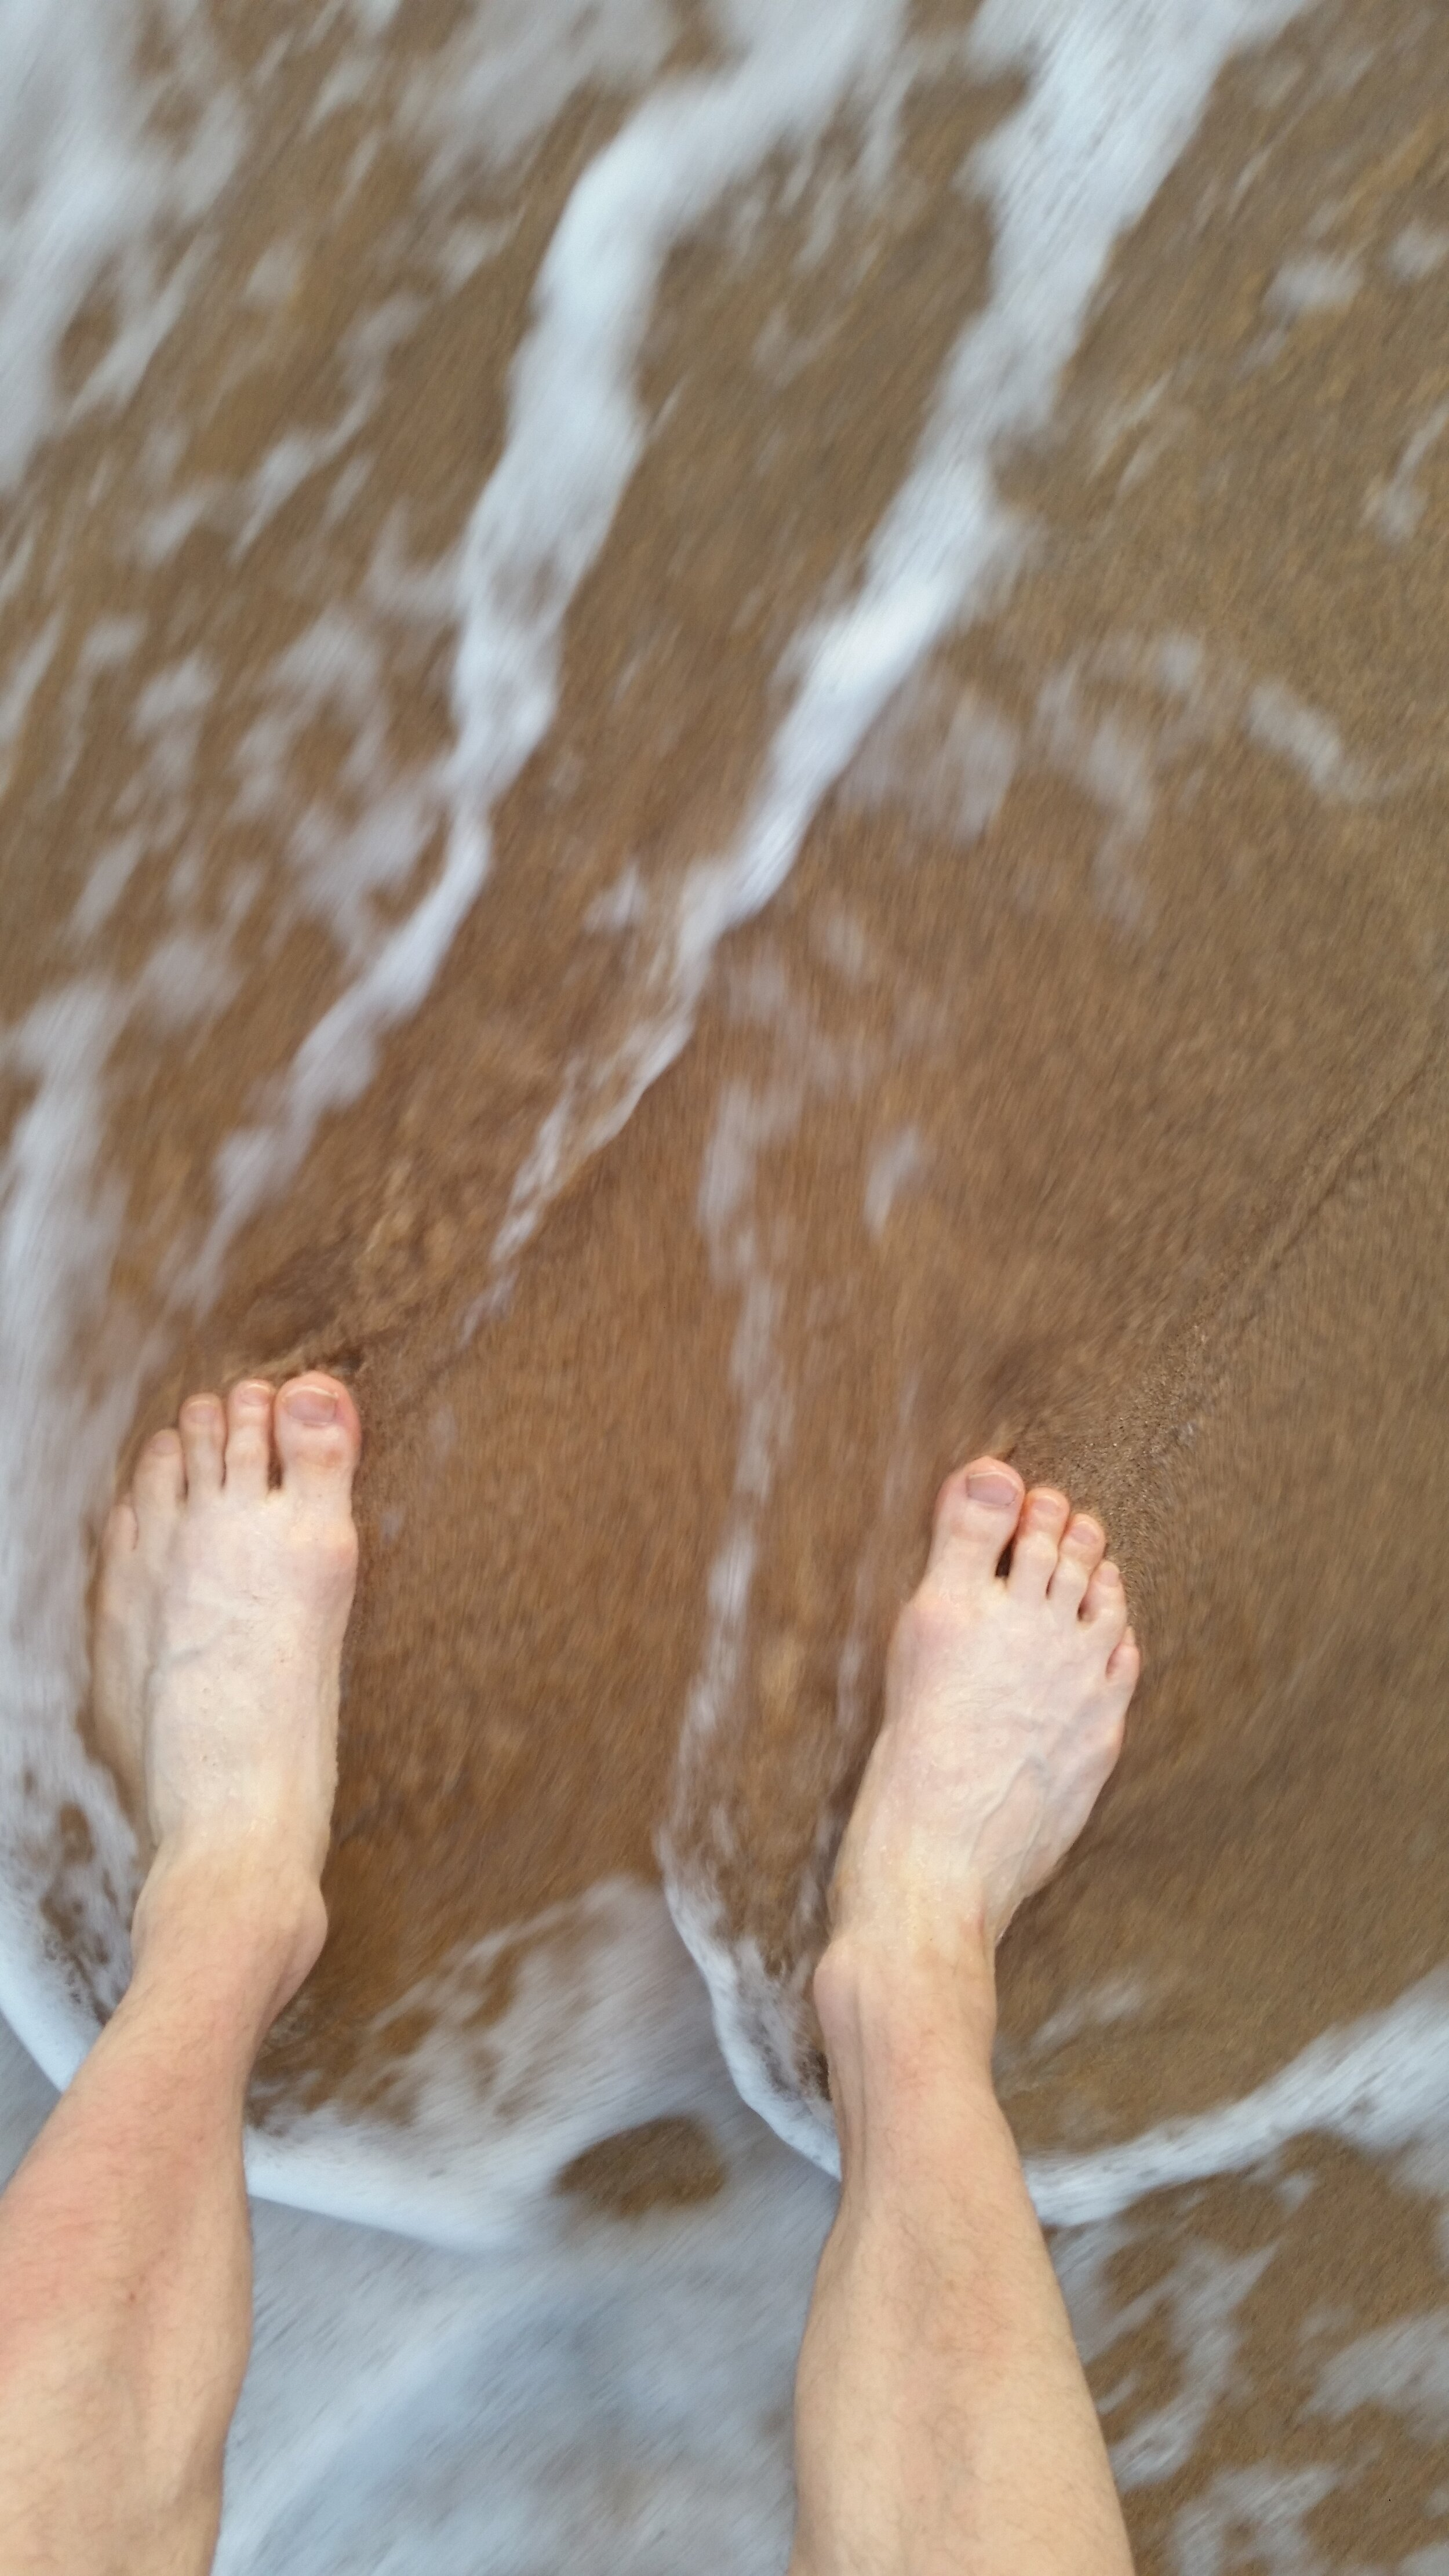 The author's feet in the sands of Kaanapali Shores.